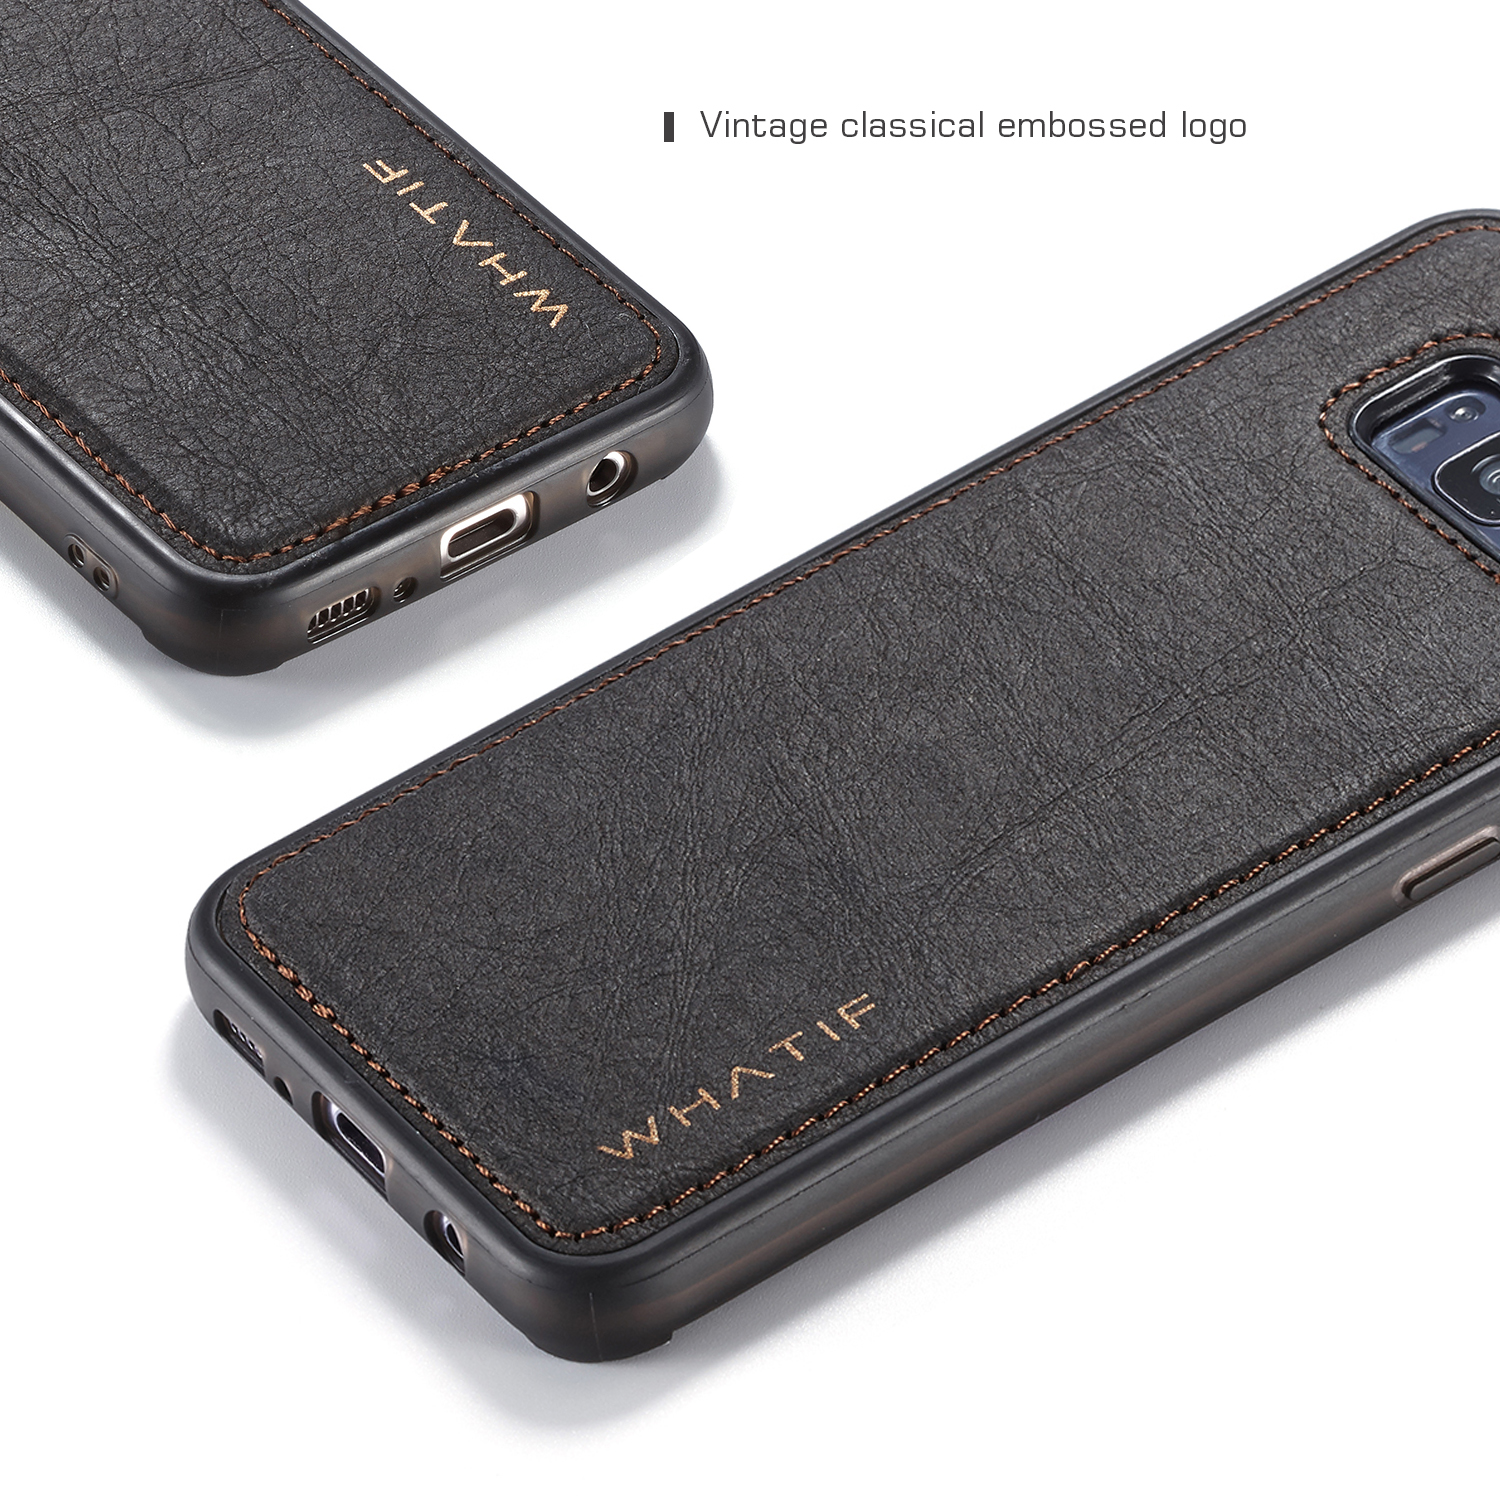 the latest 225ba 7d30c Details about Luxury Leather Strap Shockproof Back Case Cover For Samsung  Note8 S7 S9 S8 Plus